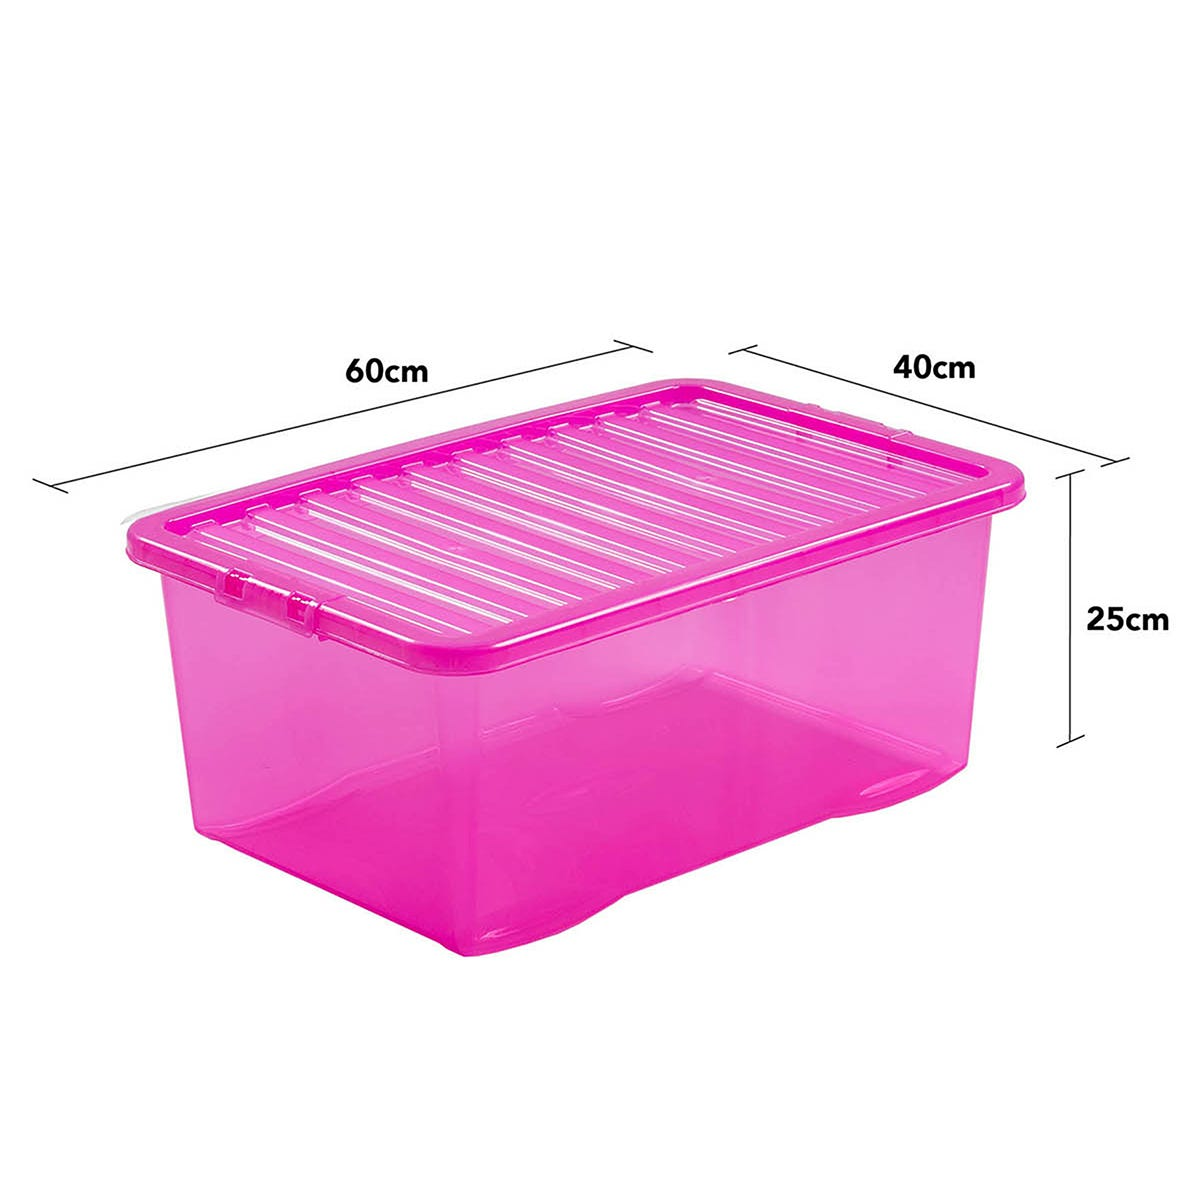 Wham Crystal Pink Storage Box with Lid 45L- Set of 5